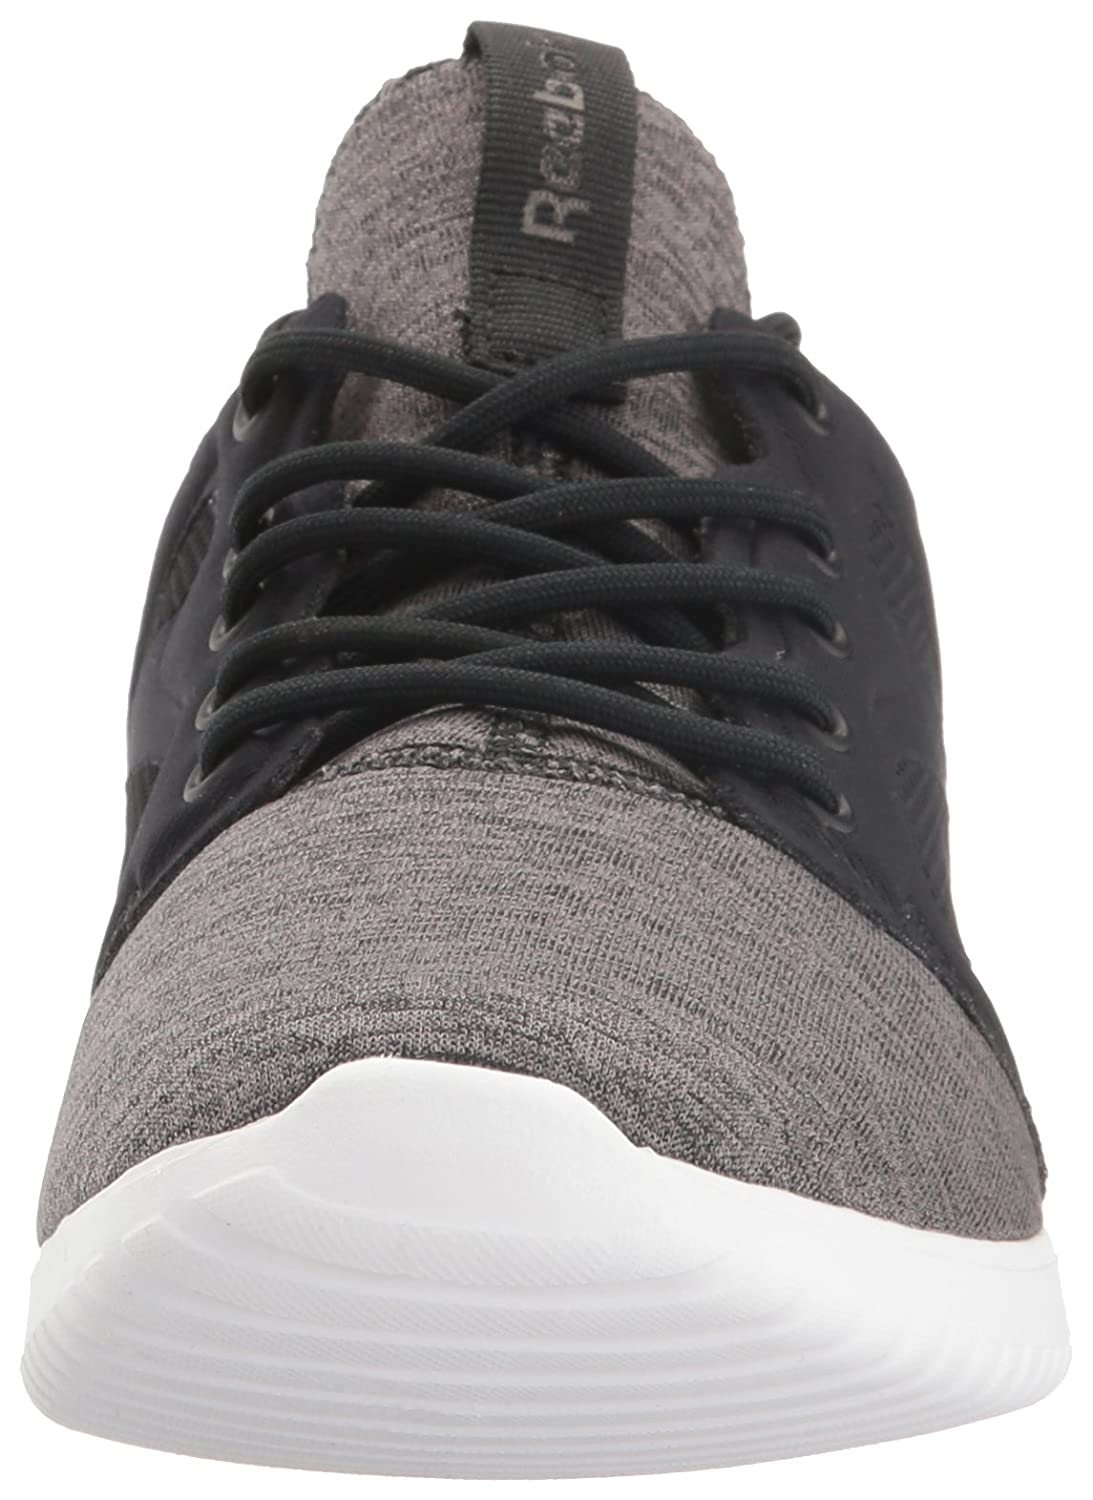 Reebok Women's Skycush Evolution Lux Fashion Sneaker B01I0FQ72G 9 B(M) US|Black/White